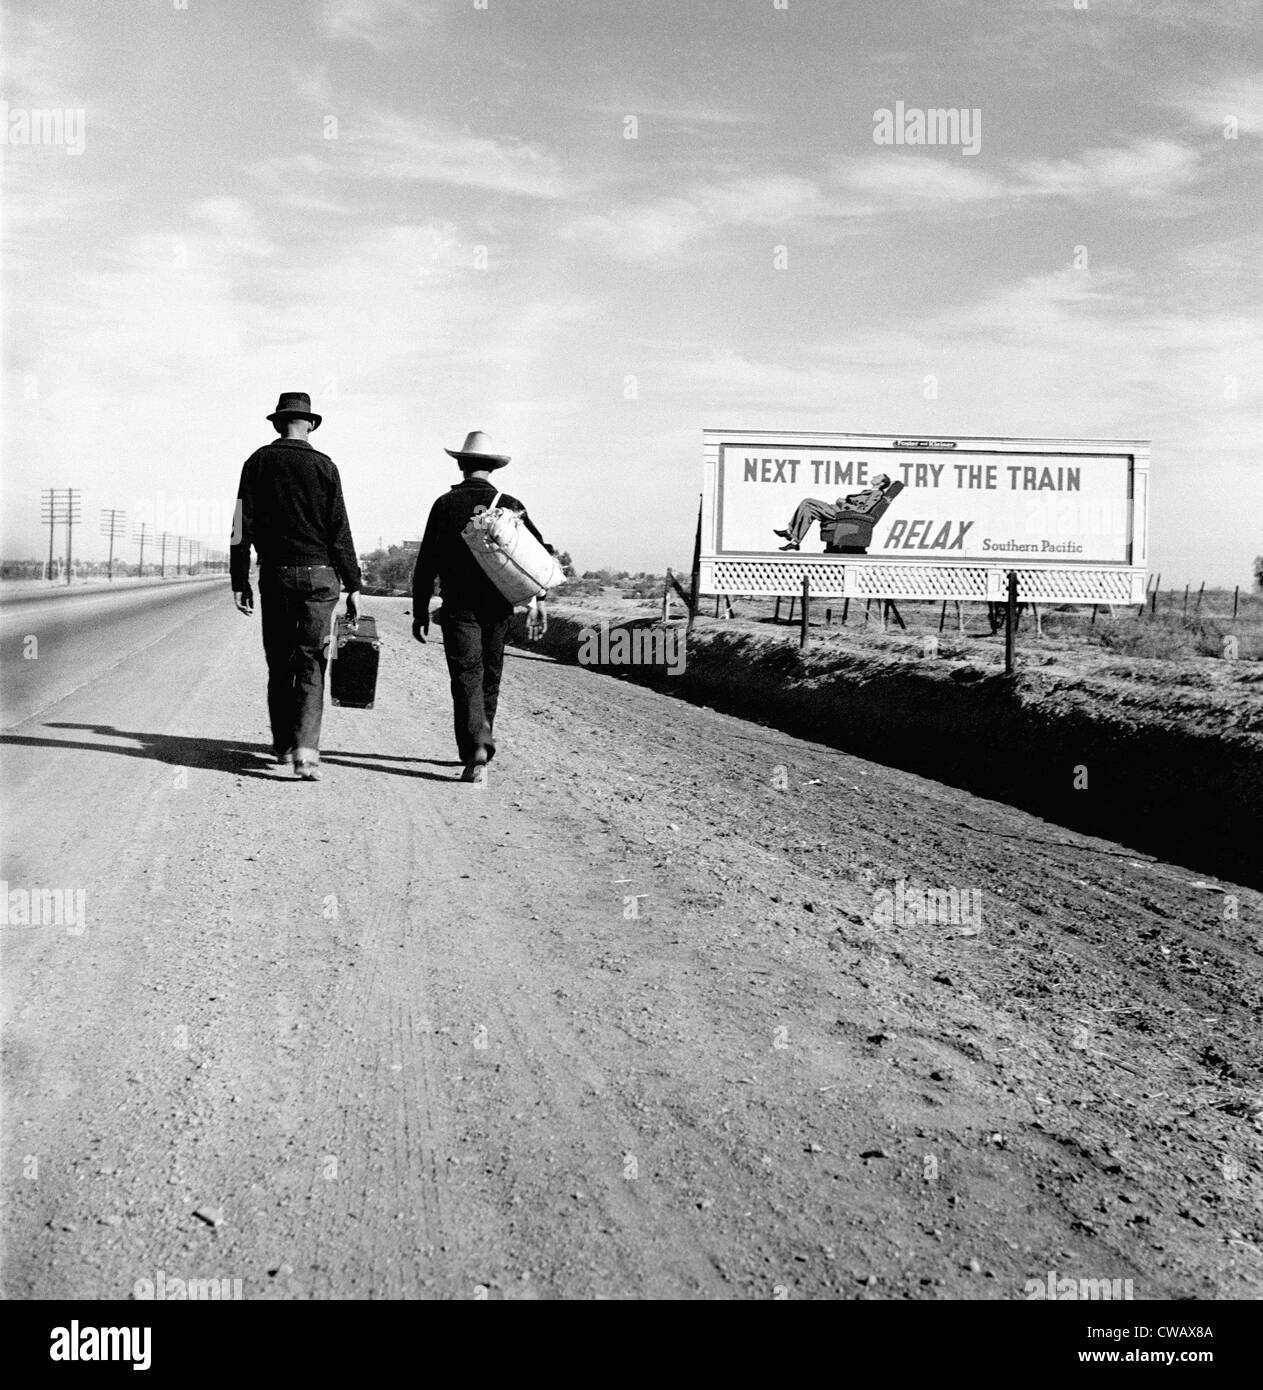 The Great Depression. Toward Los Angeles, California, billboard reads: 'Next time try the train Relax Southern - Stock Image